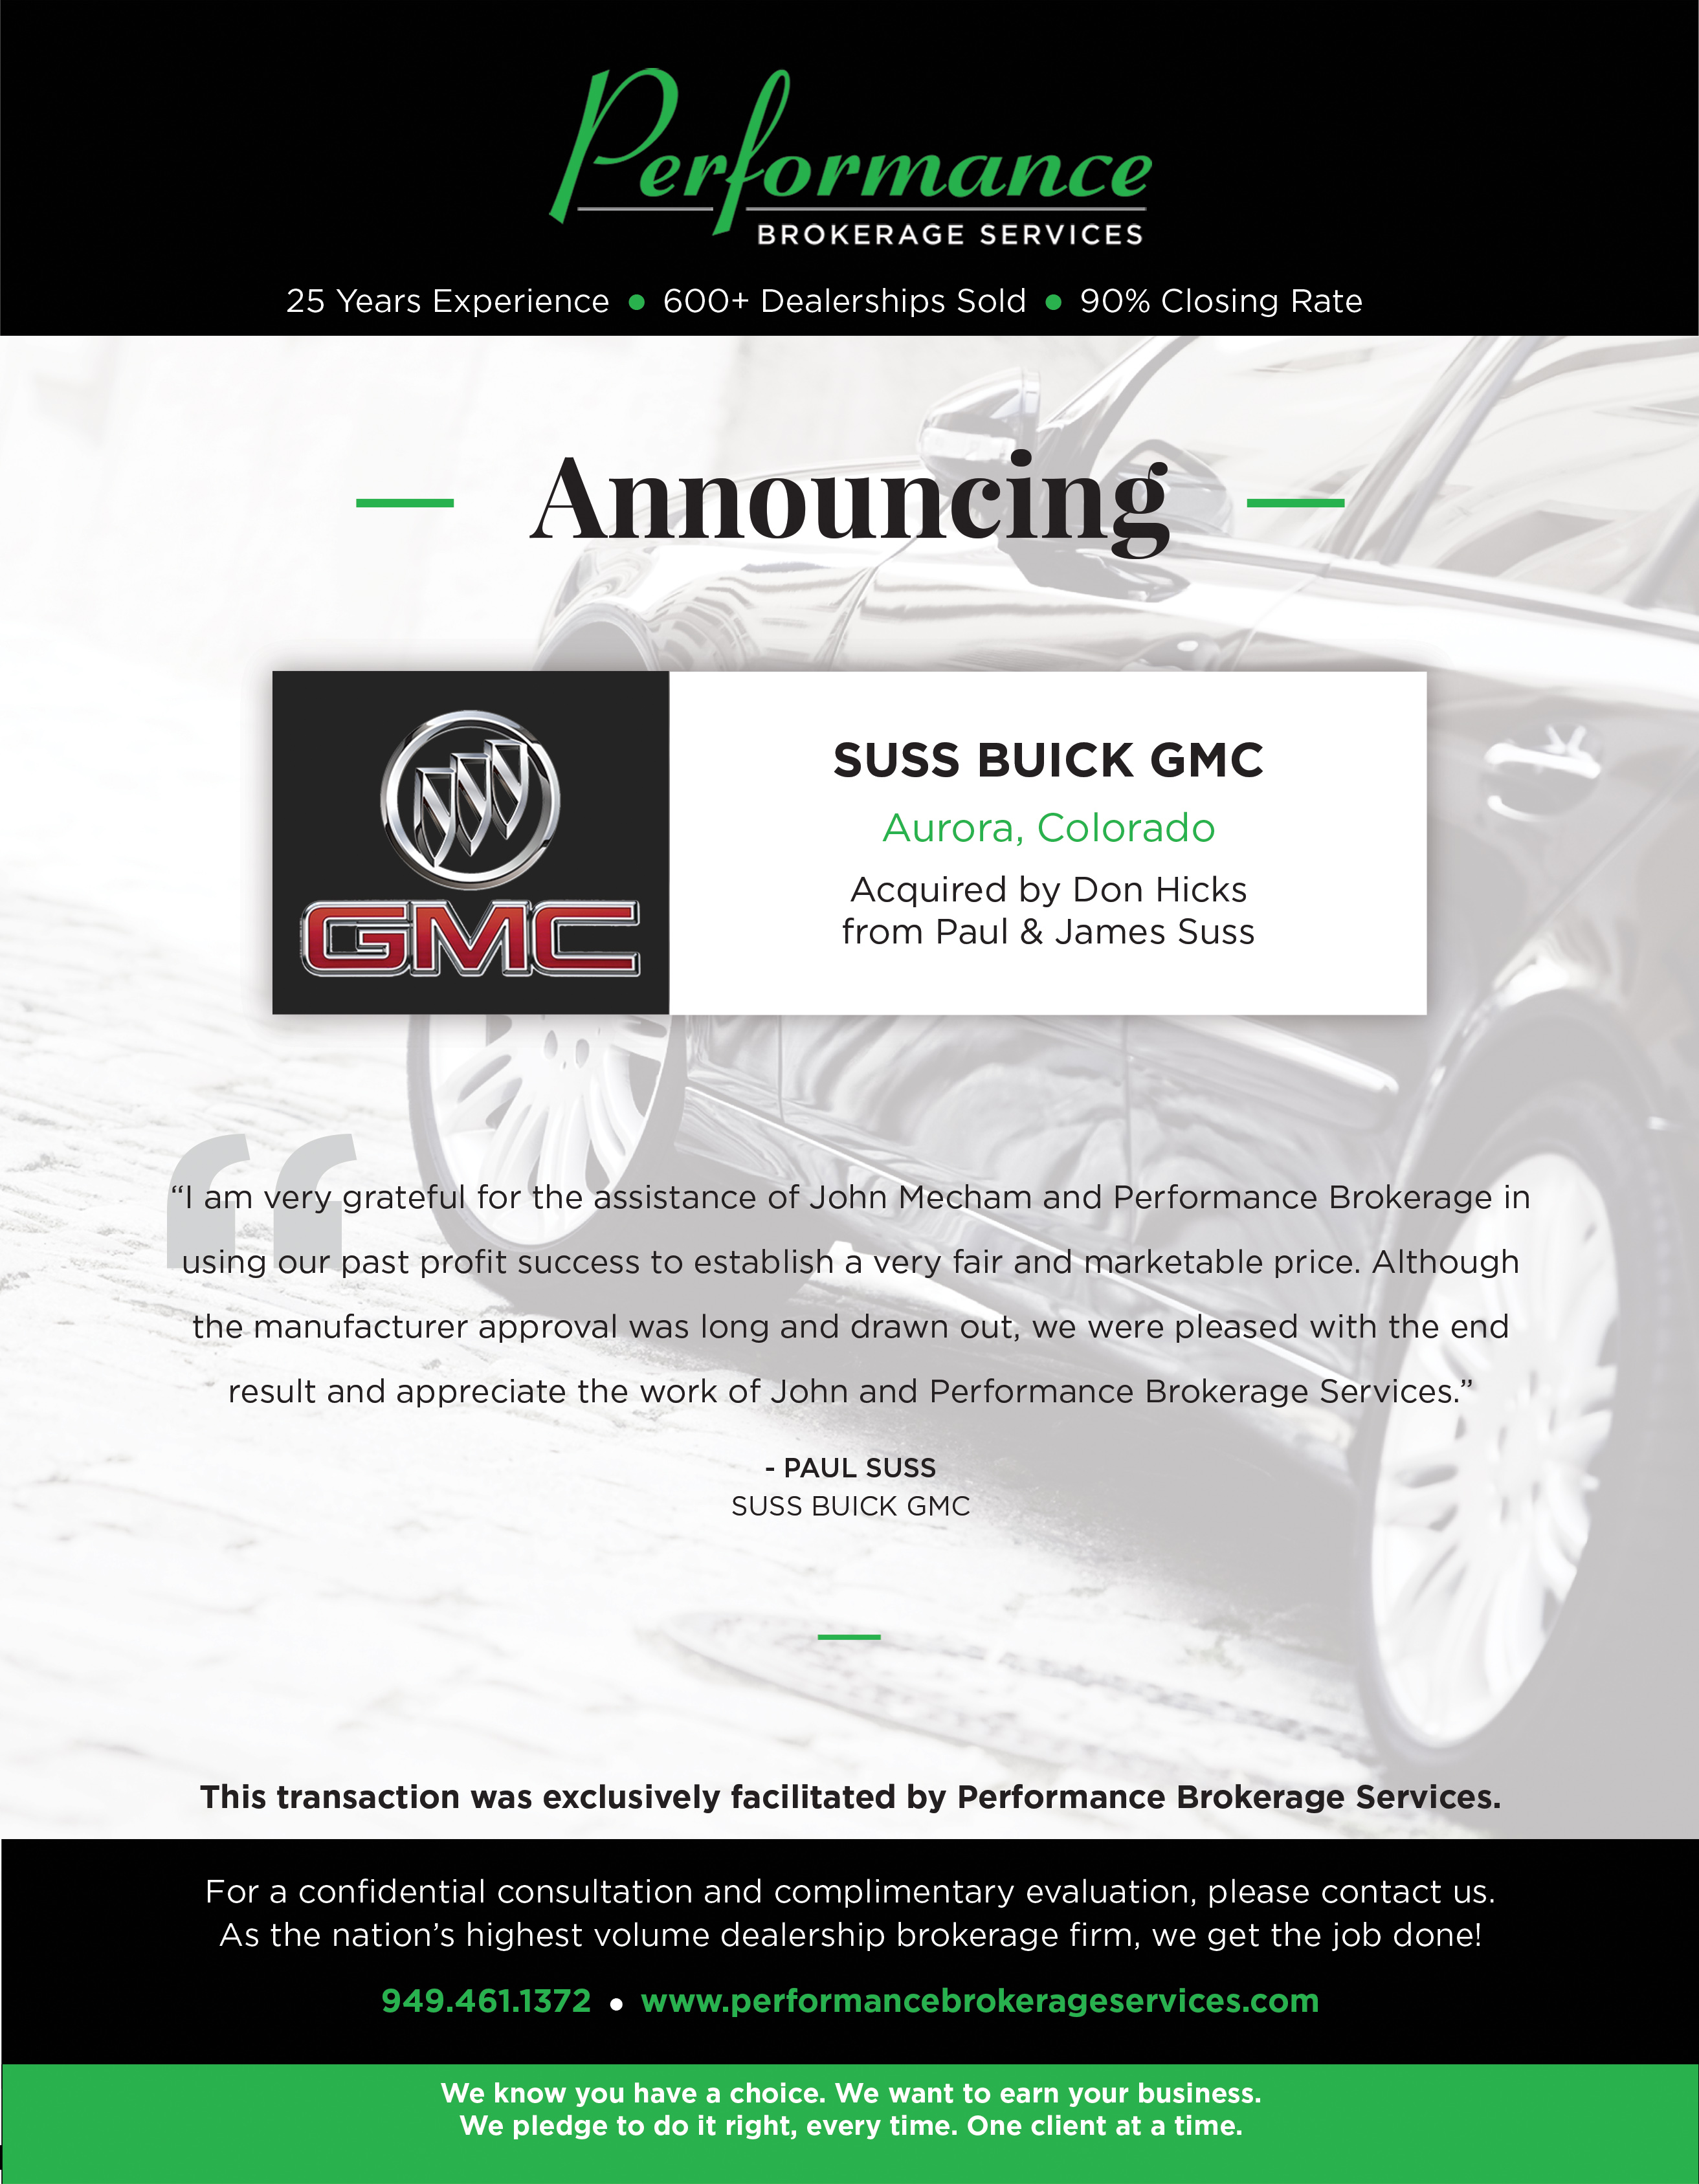 Suss Buick Gmc >> Suss Buick Gmc In Aurora Colorado Sells To Don Hicks